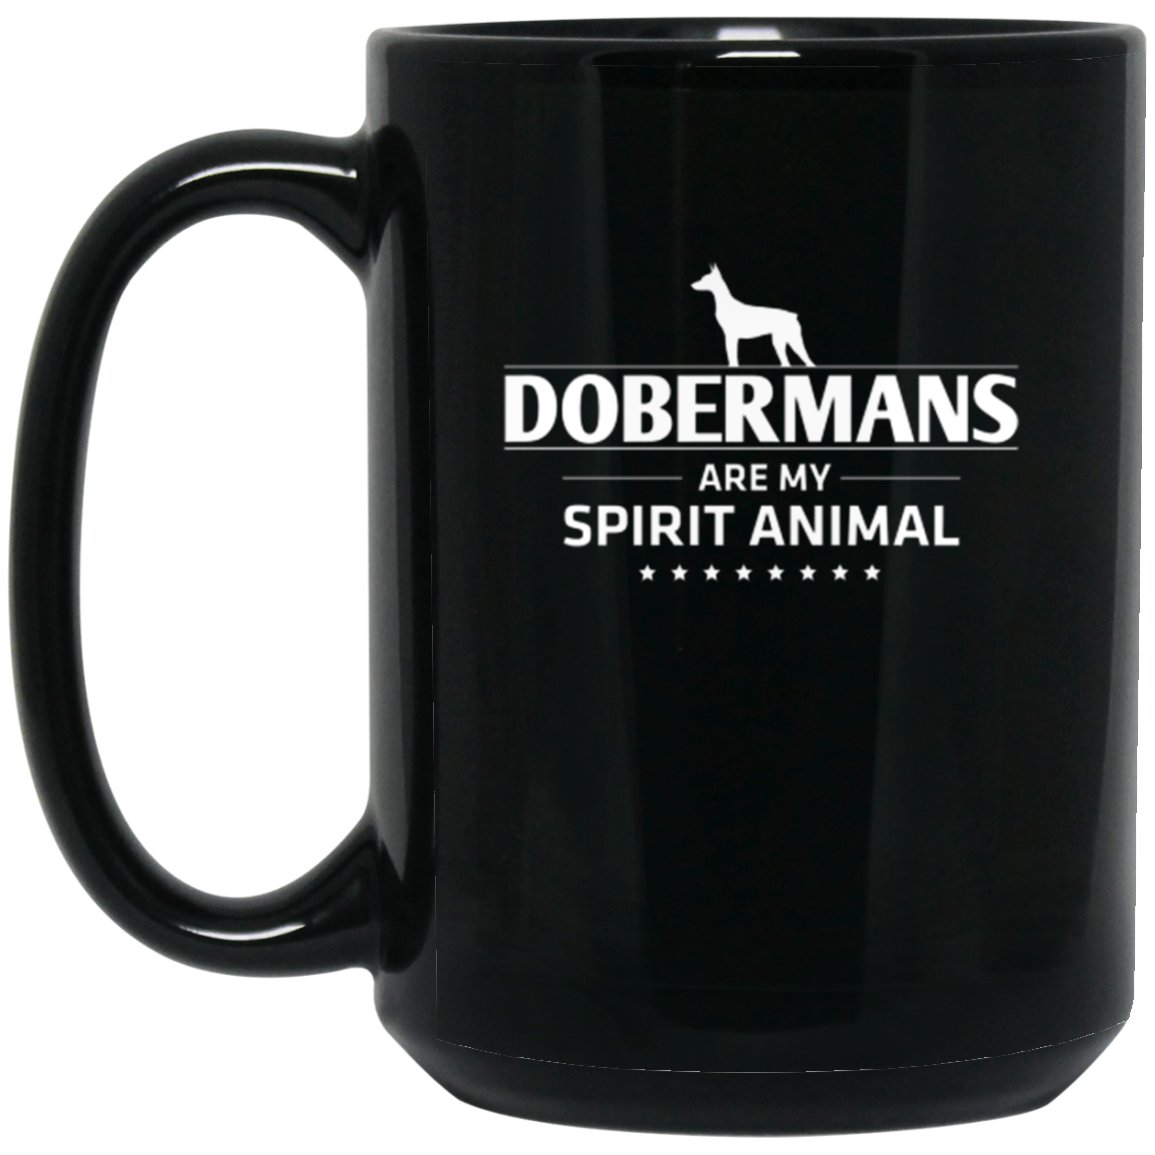 Doberman - Dobermans Are My Spirit Animal Large Black Mug